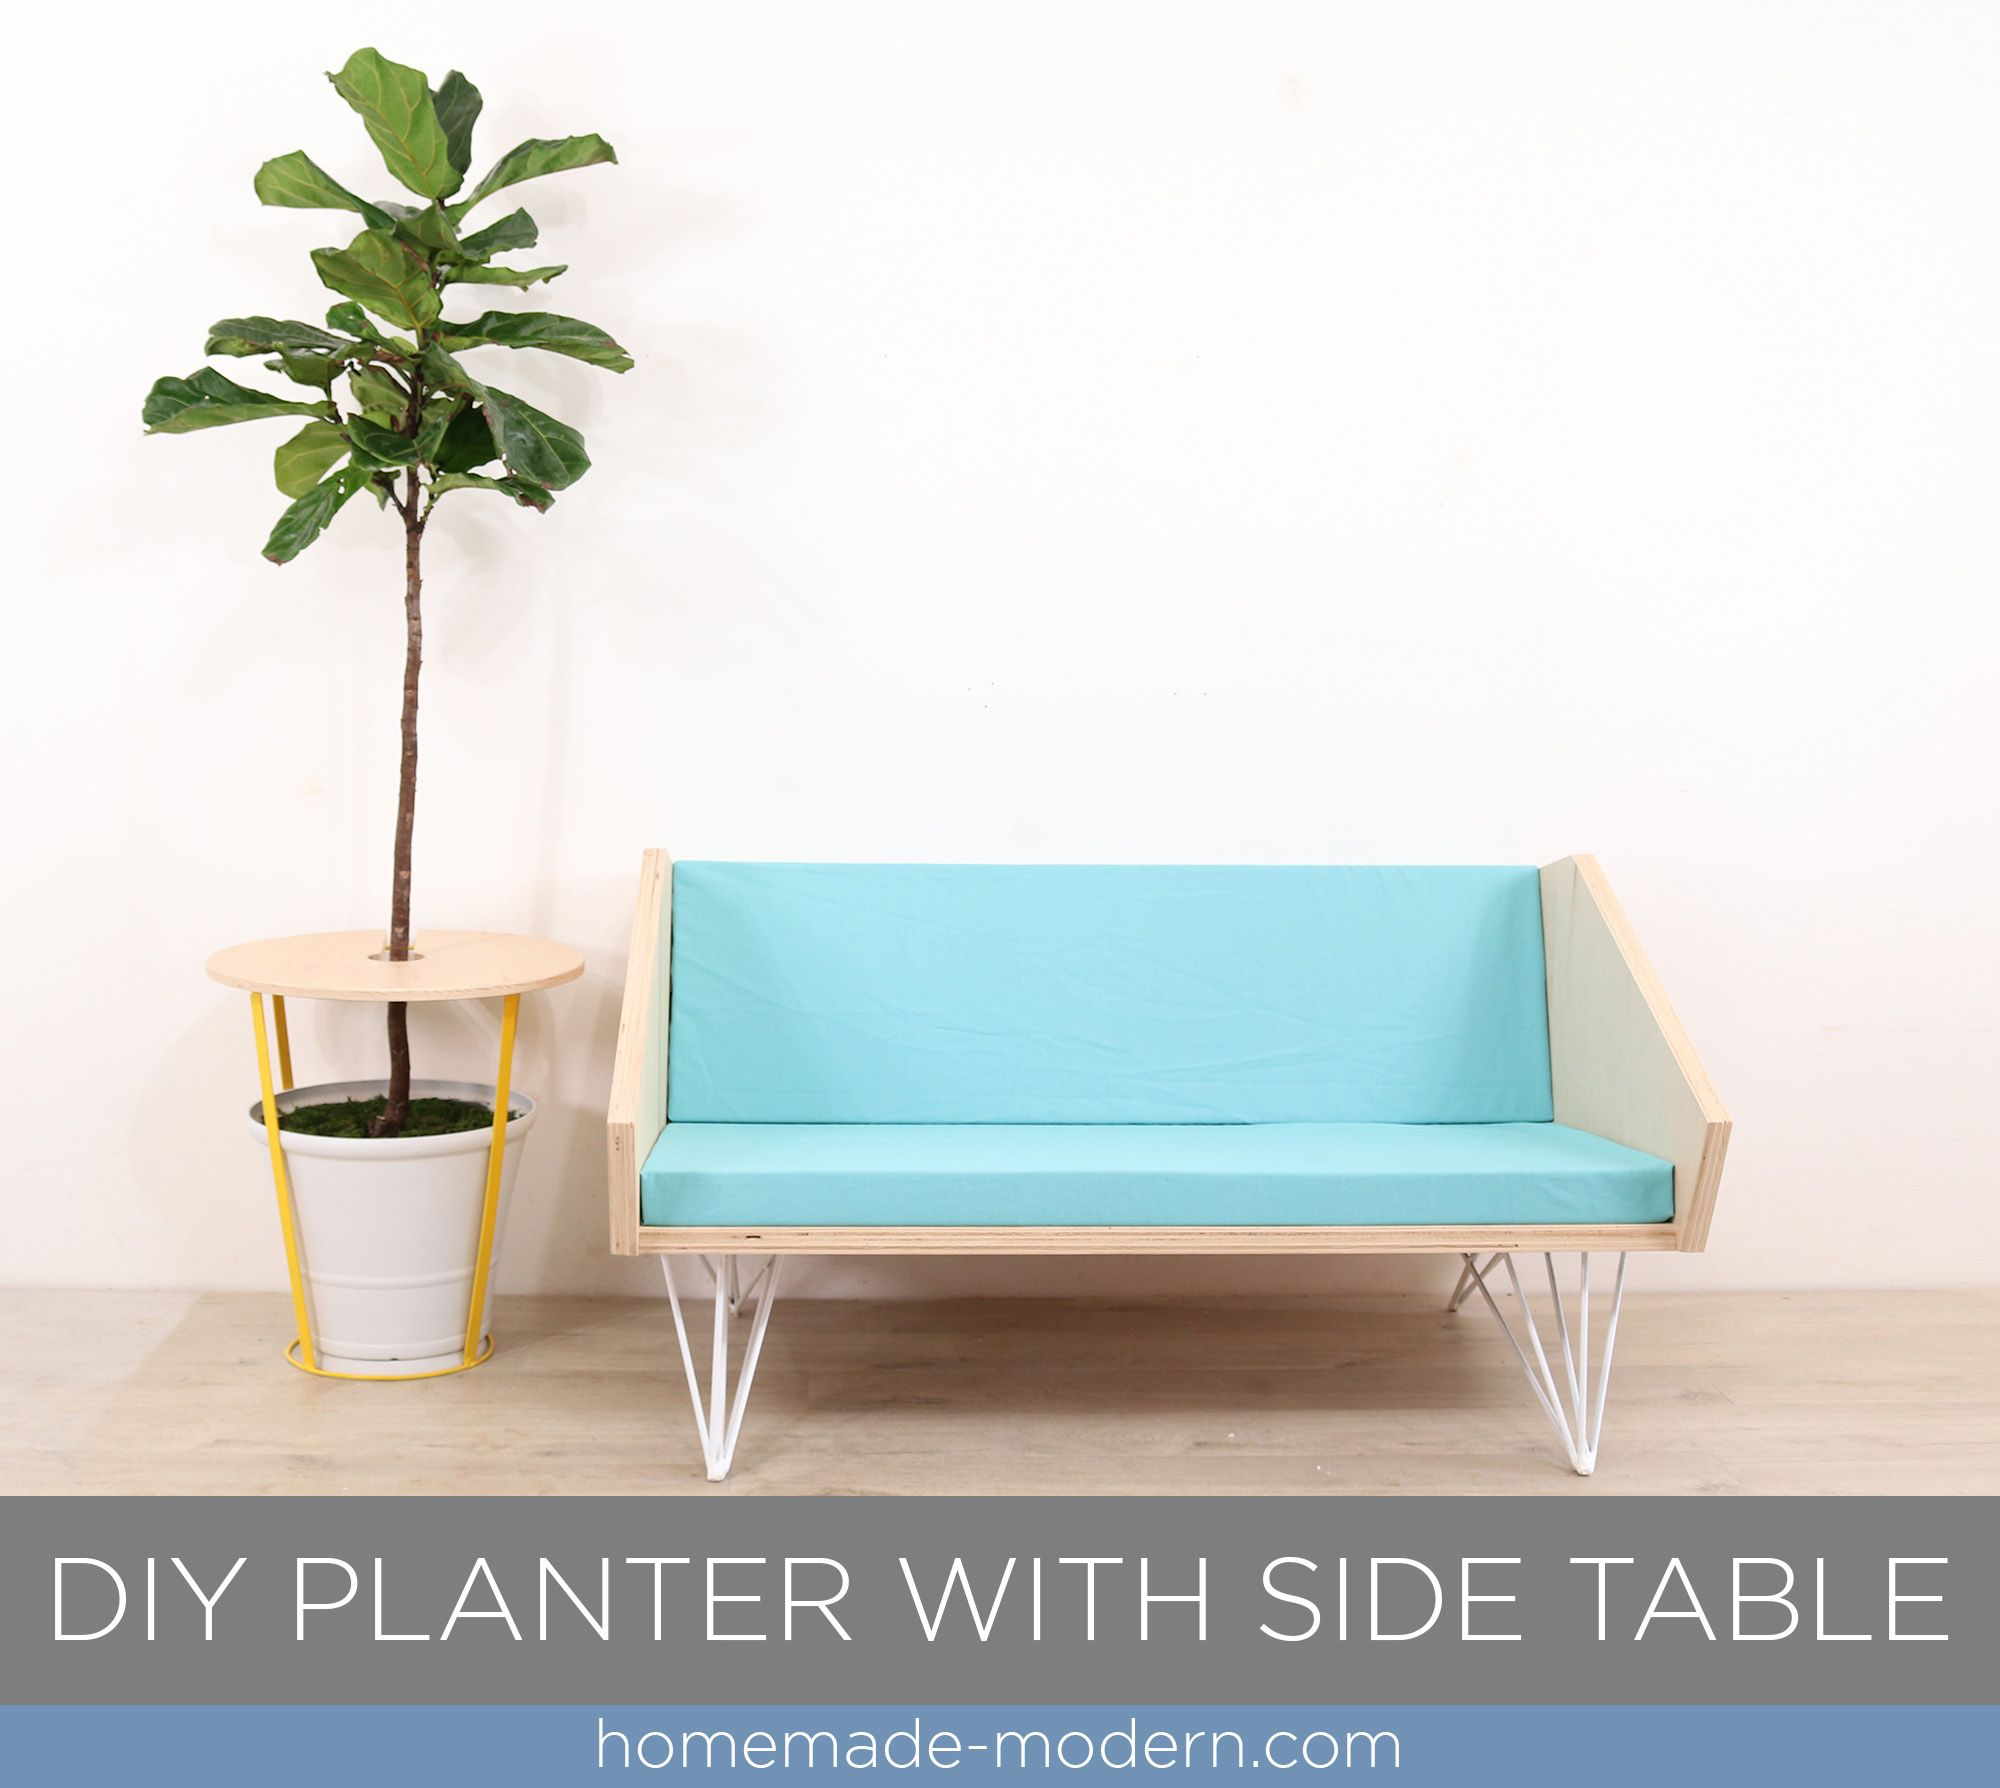 This Diy Planter And Side Table Was Designed By Ben Uyeda And Can Be Made Using Jus A Few Basic Power To Diy Planters Homemade Modern Diy Projects Coffee Table [ 1788 x 2000 Pixel ]